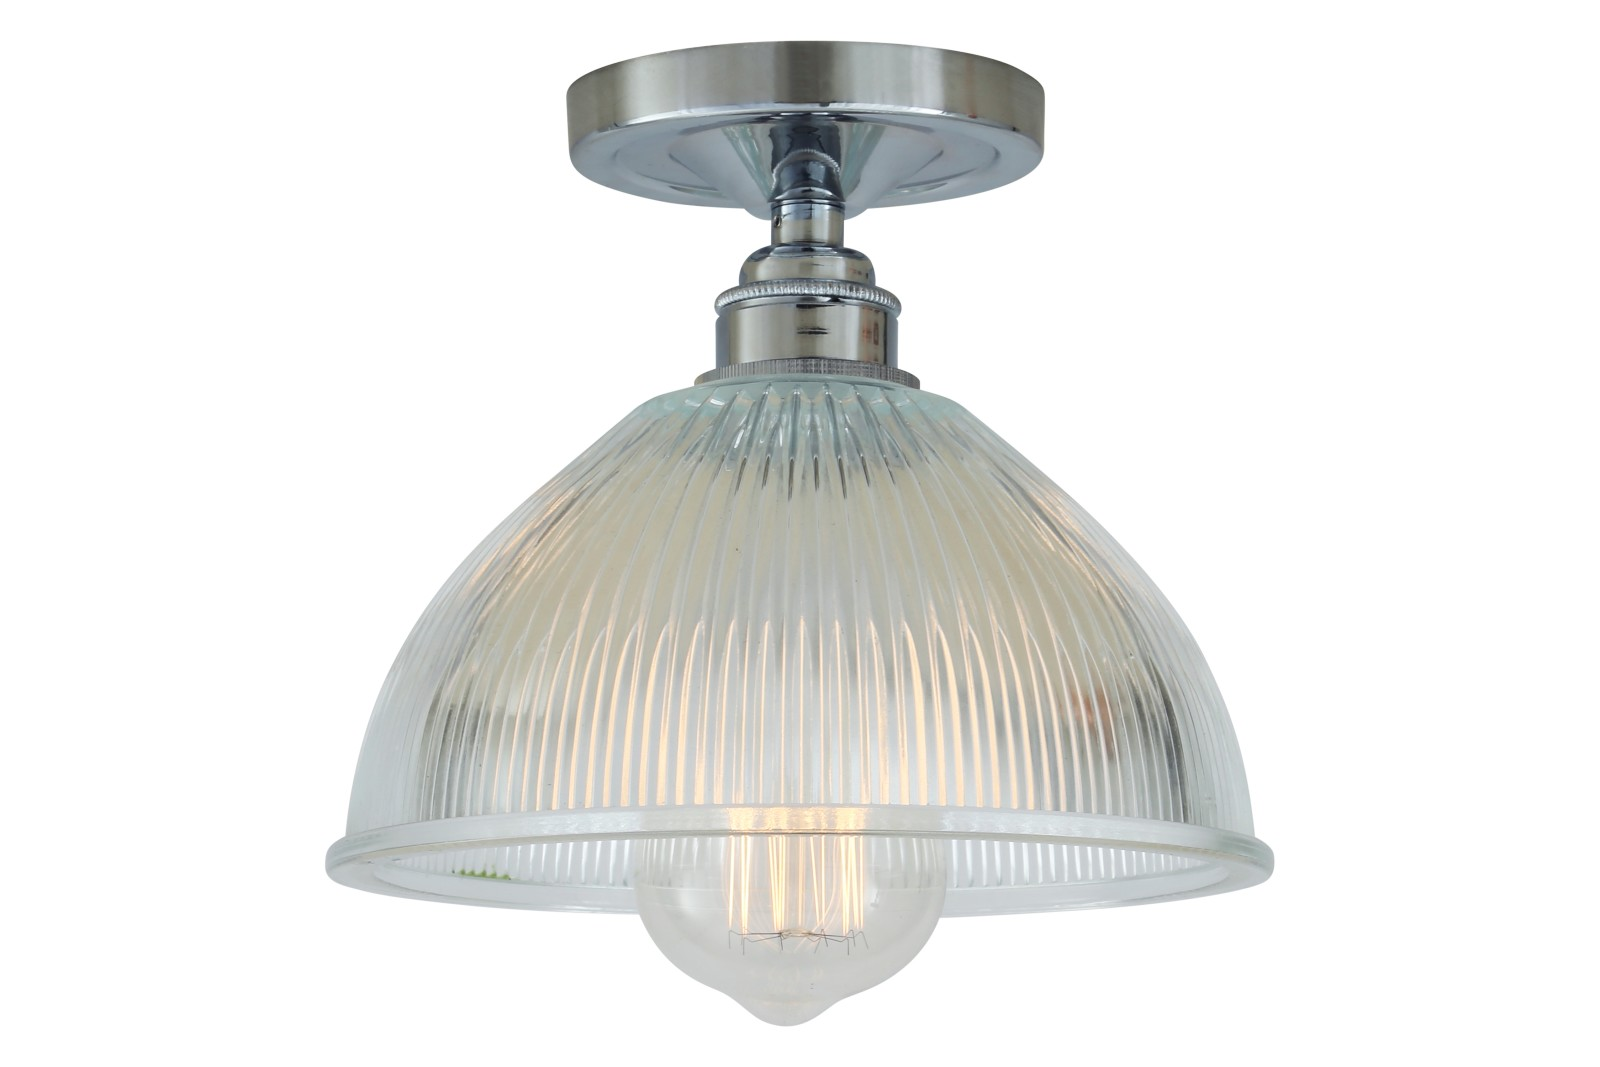 Erbil Ceiling Light Polished Chrome